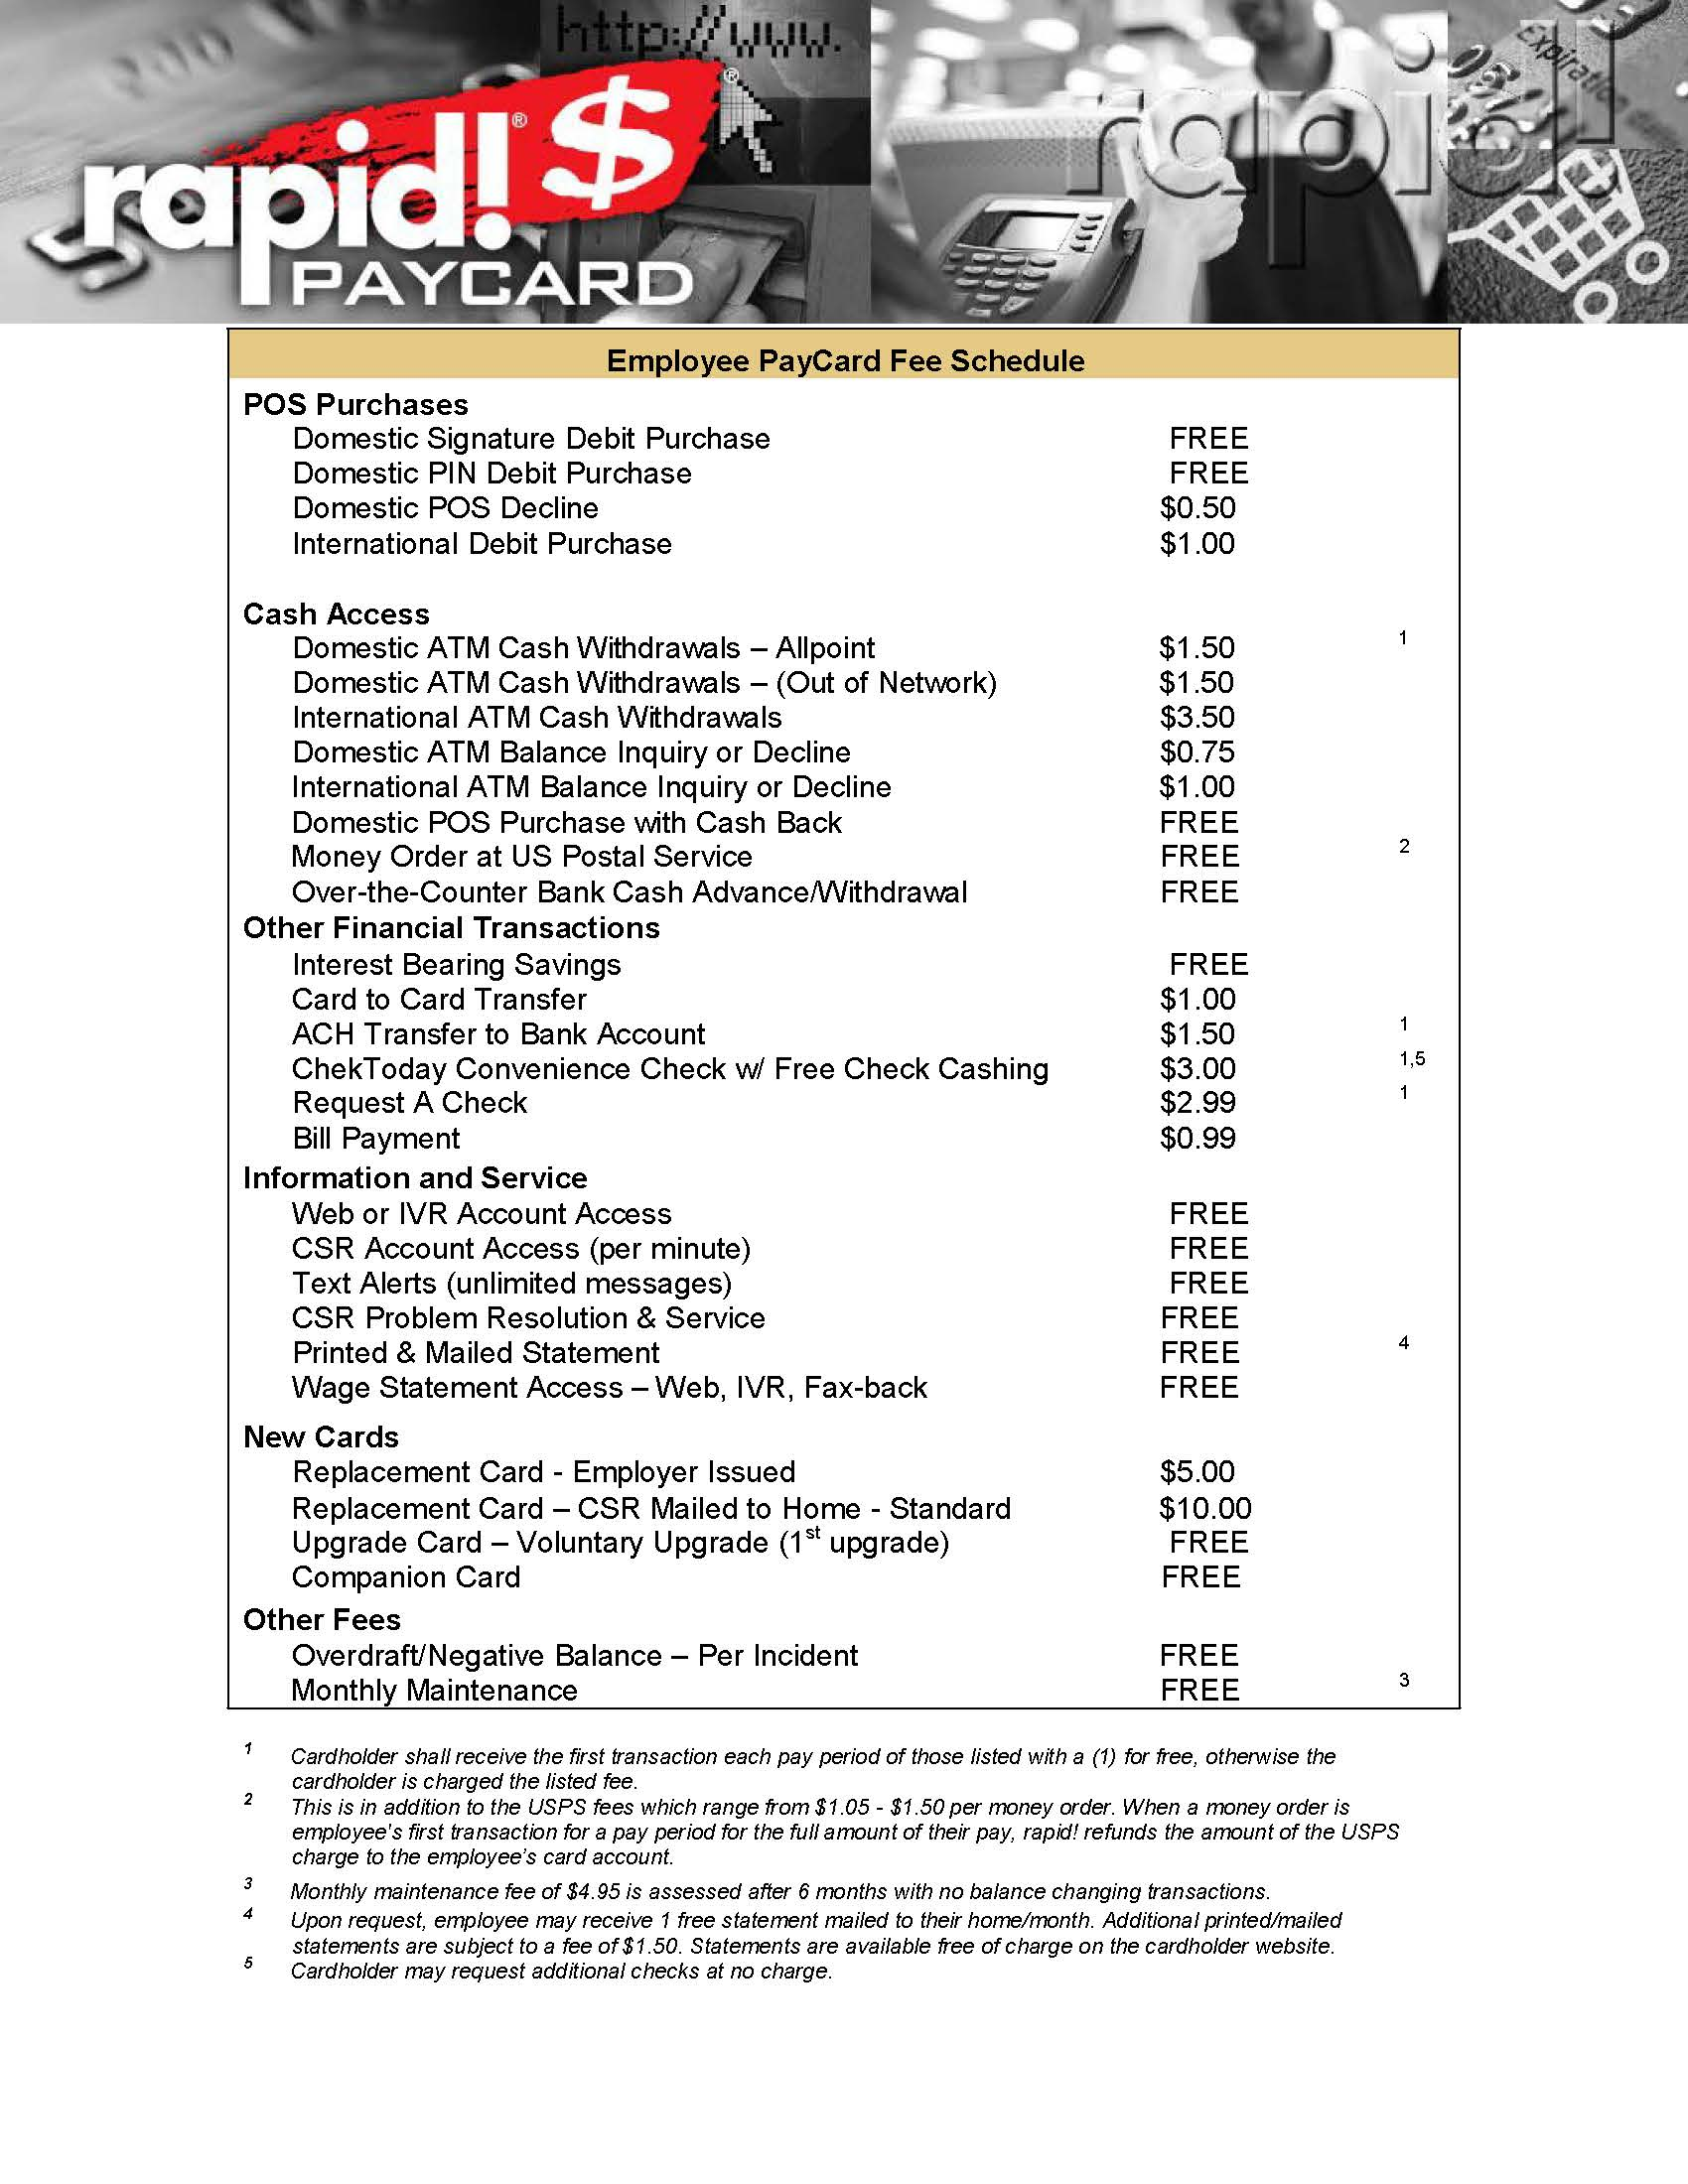 WEXrapid! PayCard Fee Schedule